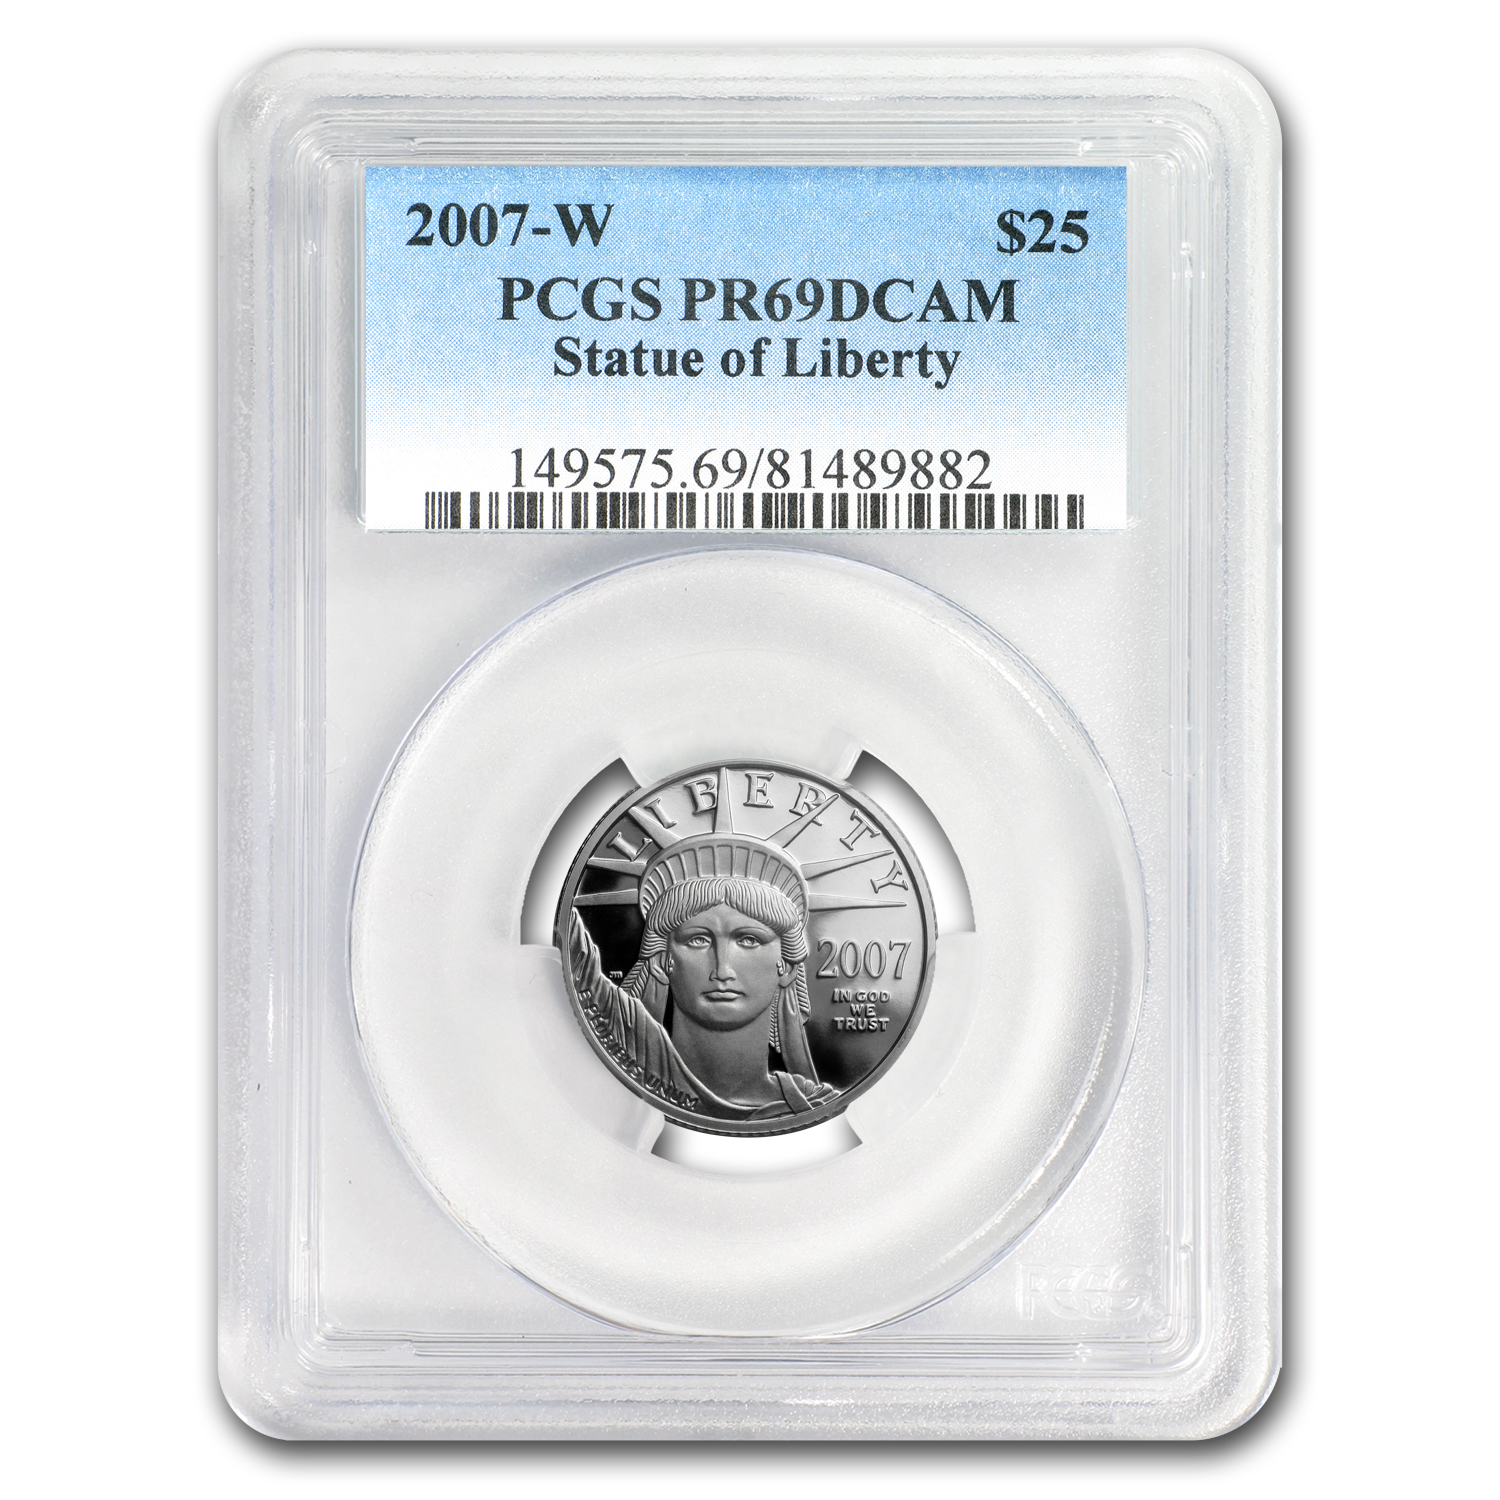 2007-W 1/4 oz Proof Platinum American Eagle PR-69 PCGS